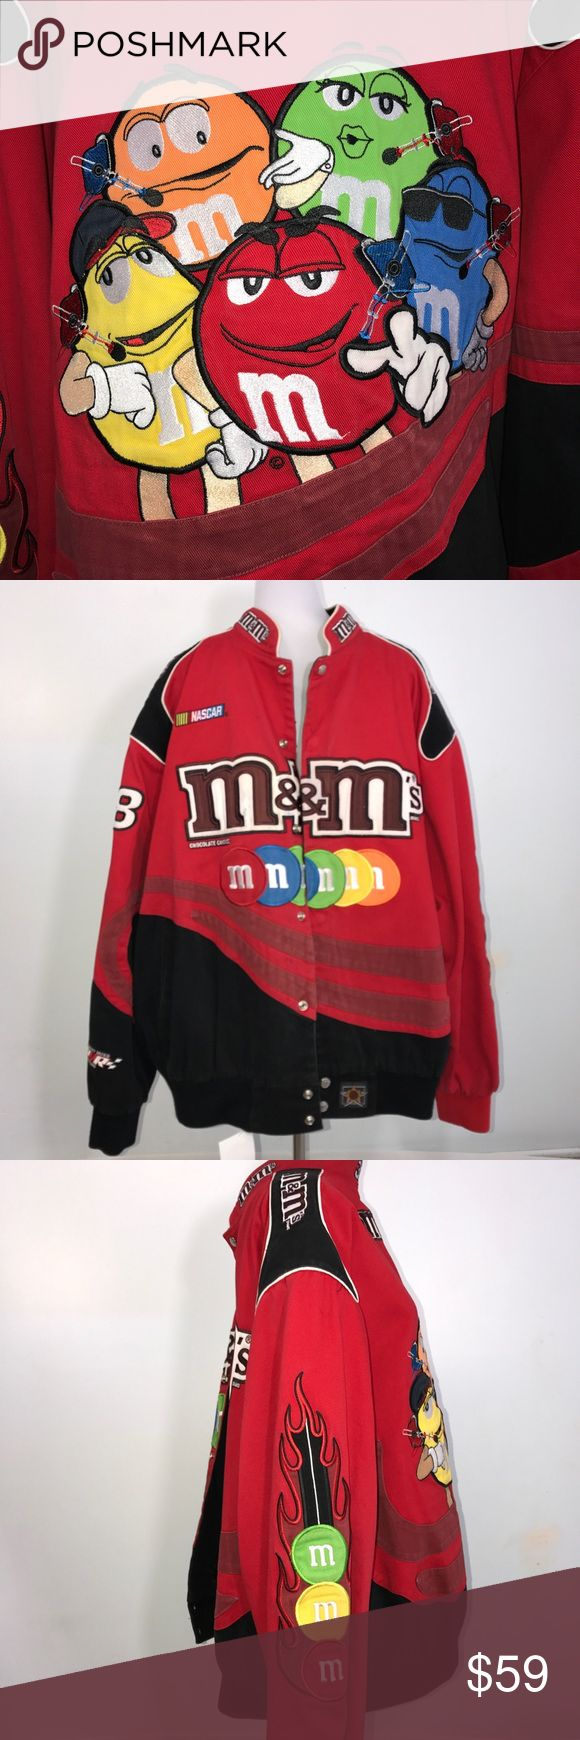 """JH Design Men's NASCAR M&M Jacket Multicolor 4XL JH Design Men's multicolor NASCAR M&M jacket. Incredible patch design. Faded and dye bleeding on front and black. Some piling on inner waistband. Lying flat, approximate measurements are chest 32""""; waist 28""""-32""""; length 30"""". (A2-20) 🌼  AAll items are stored in smoke free, pet free, perfume free environment. No trades or modeling. Same or next day shipping.  Save by bundling. All offers should be submitted with the offer button. JH Design…"""